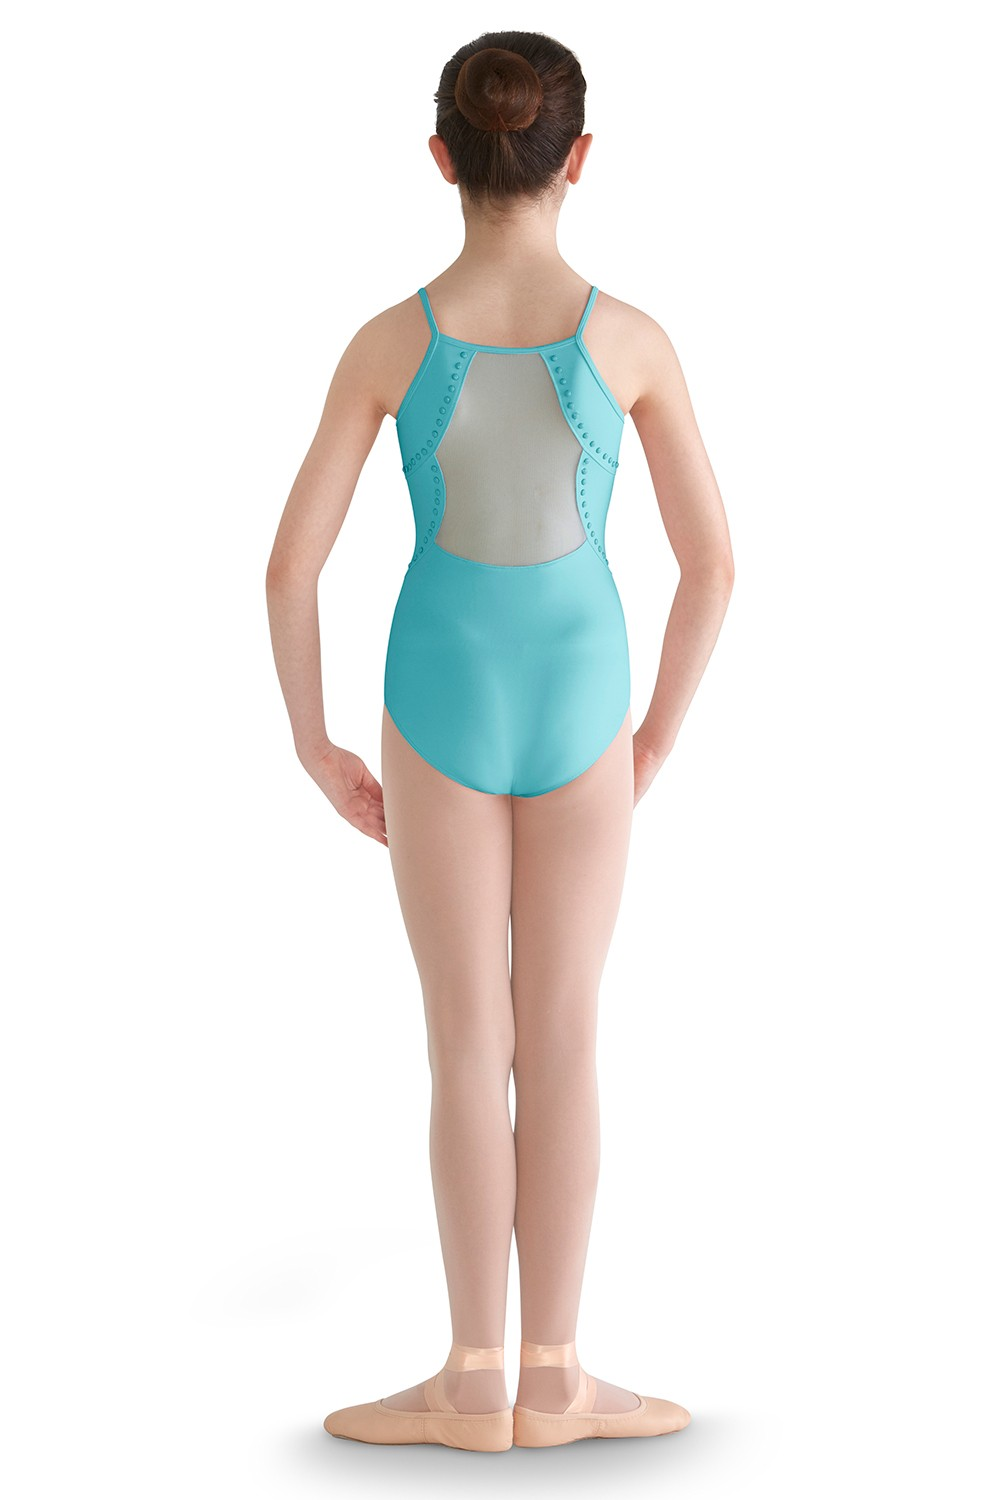 Trinetta Children's Dance Leotards